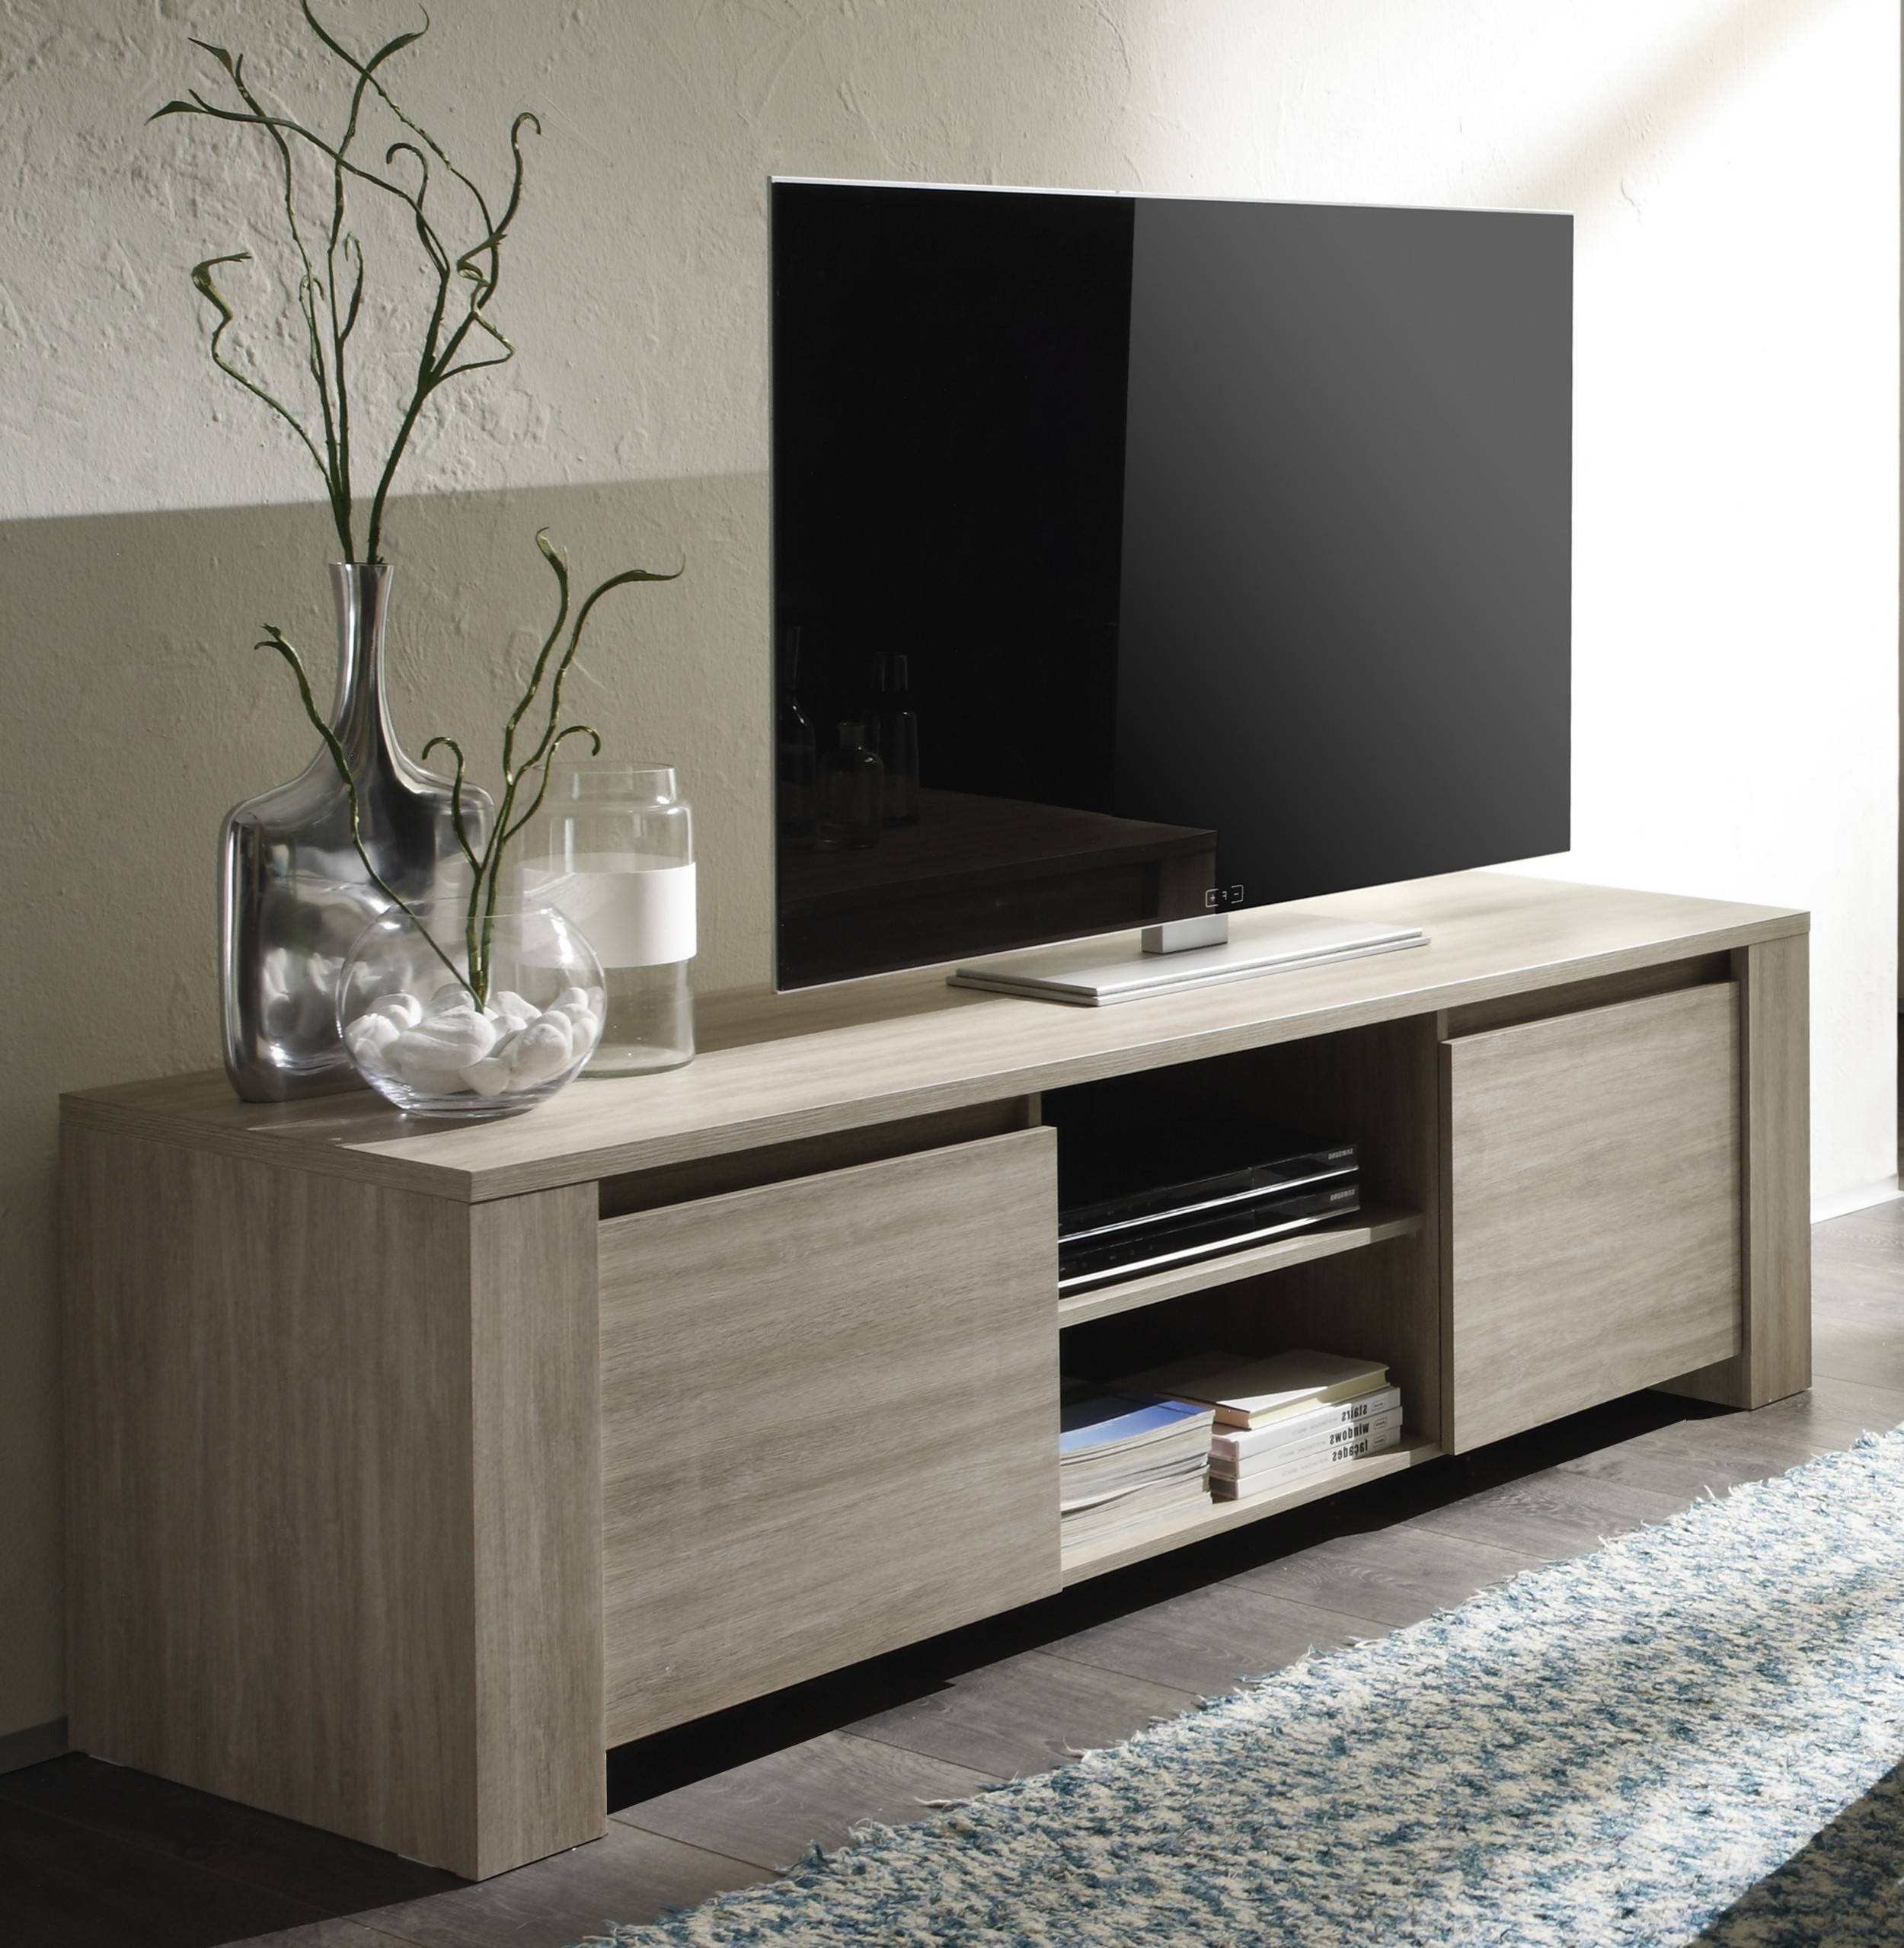 Elba Tv Stand Buy Online At Best Price – Sohomod Throughout Sideboards And Tv Stands (View 6 of 15)